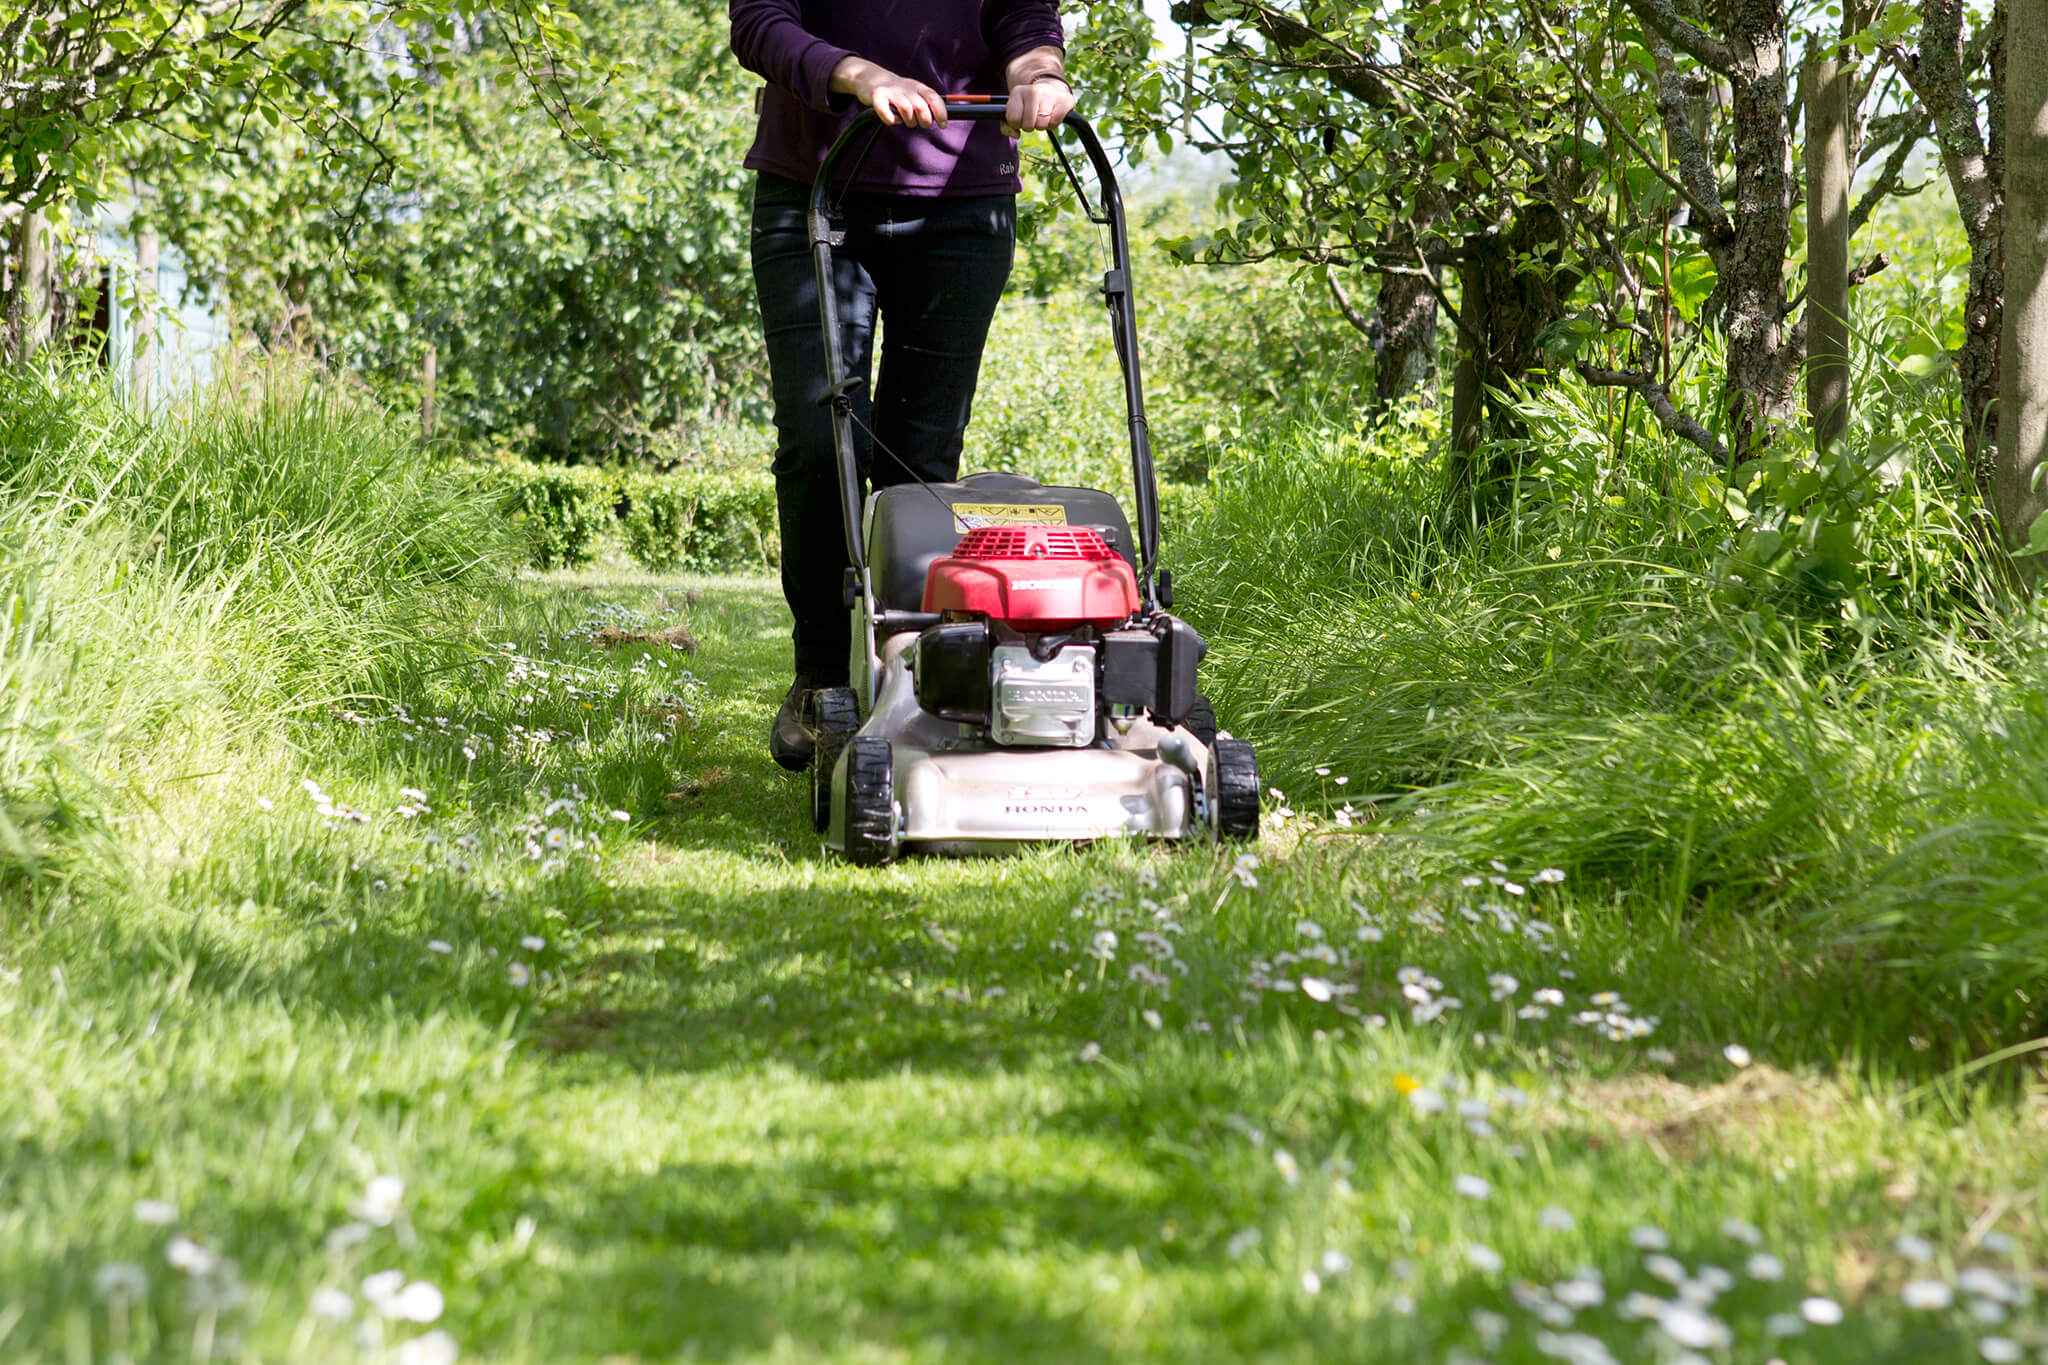 mowing-the-lawn-4